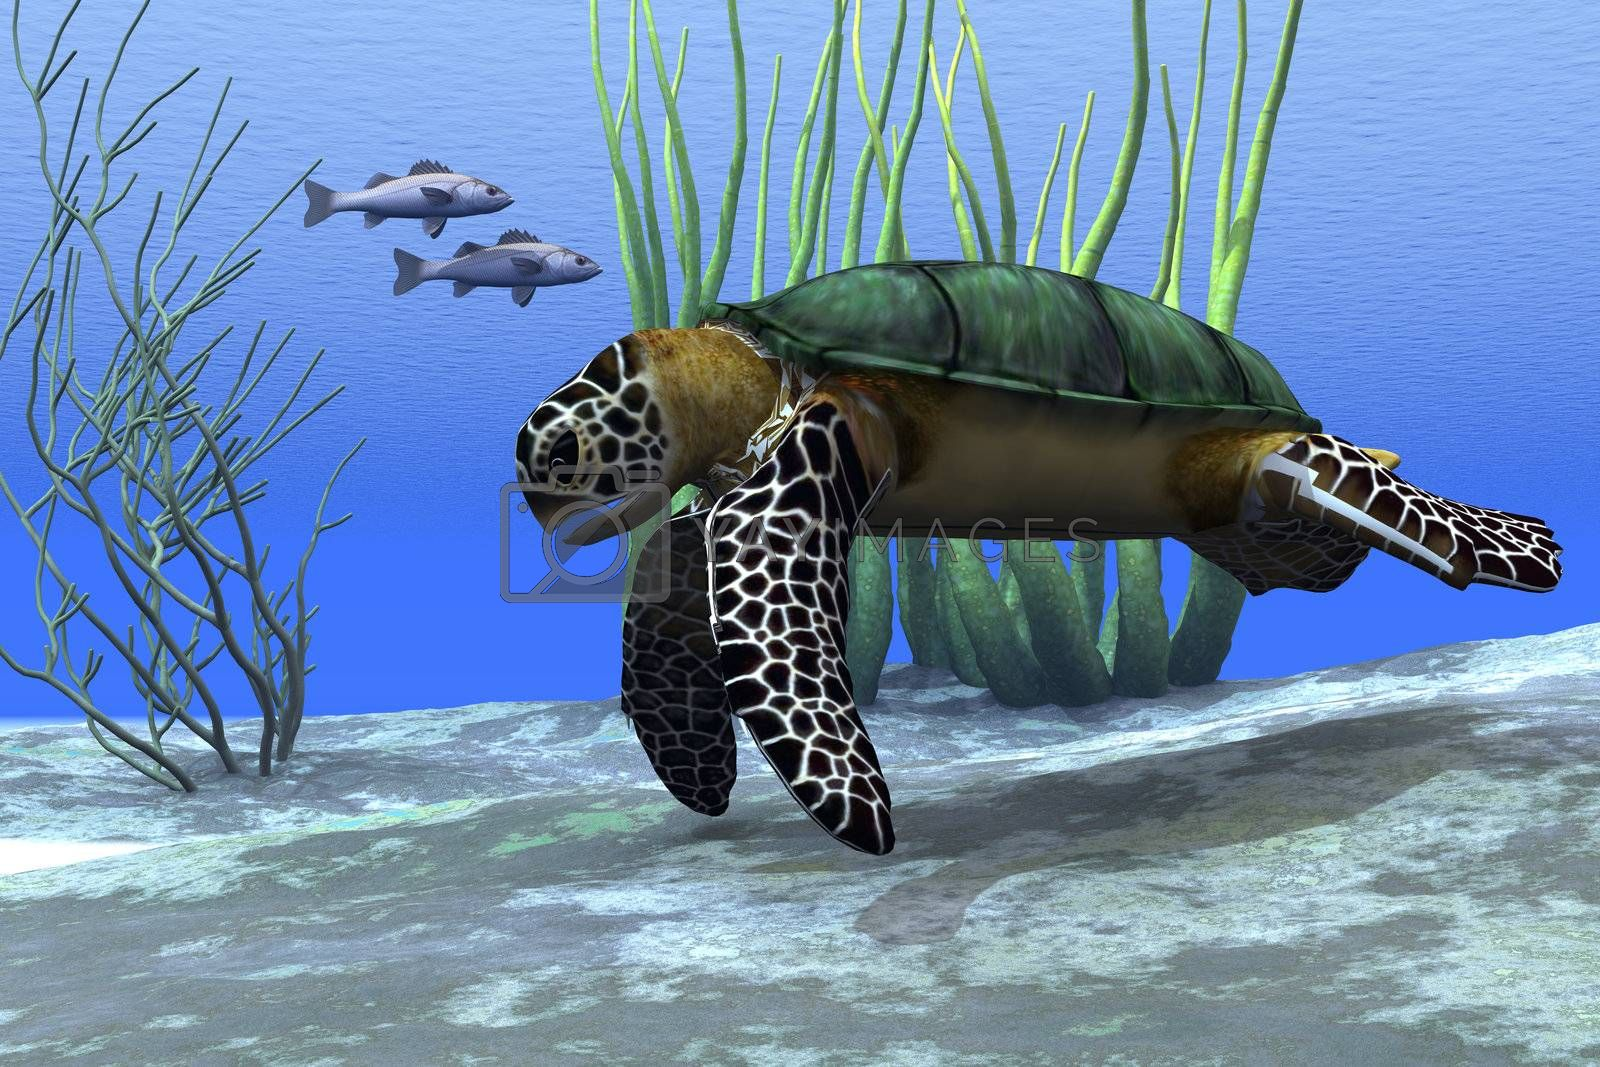 A sea turtle makes its way along the bottom of the sea looking for food.